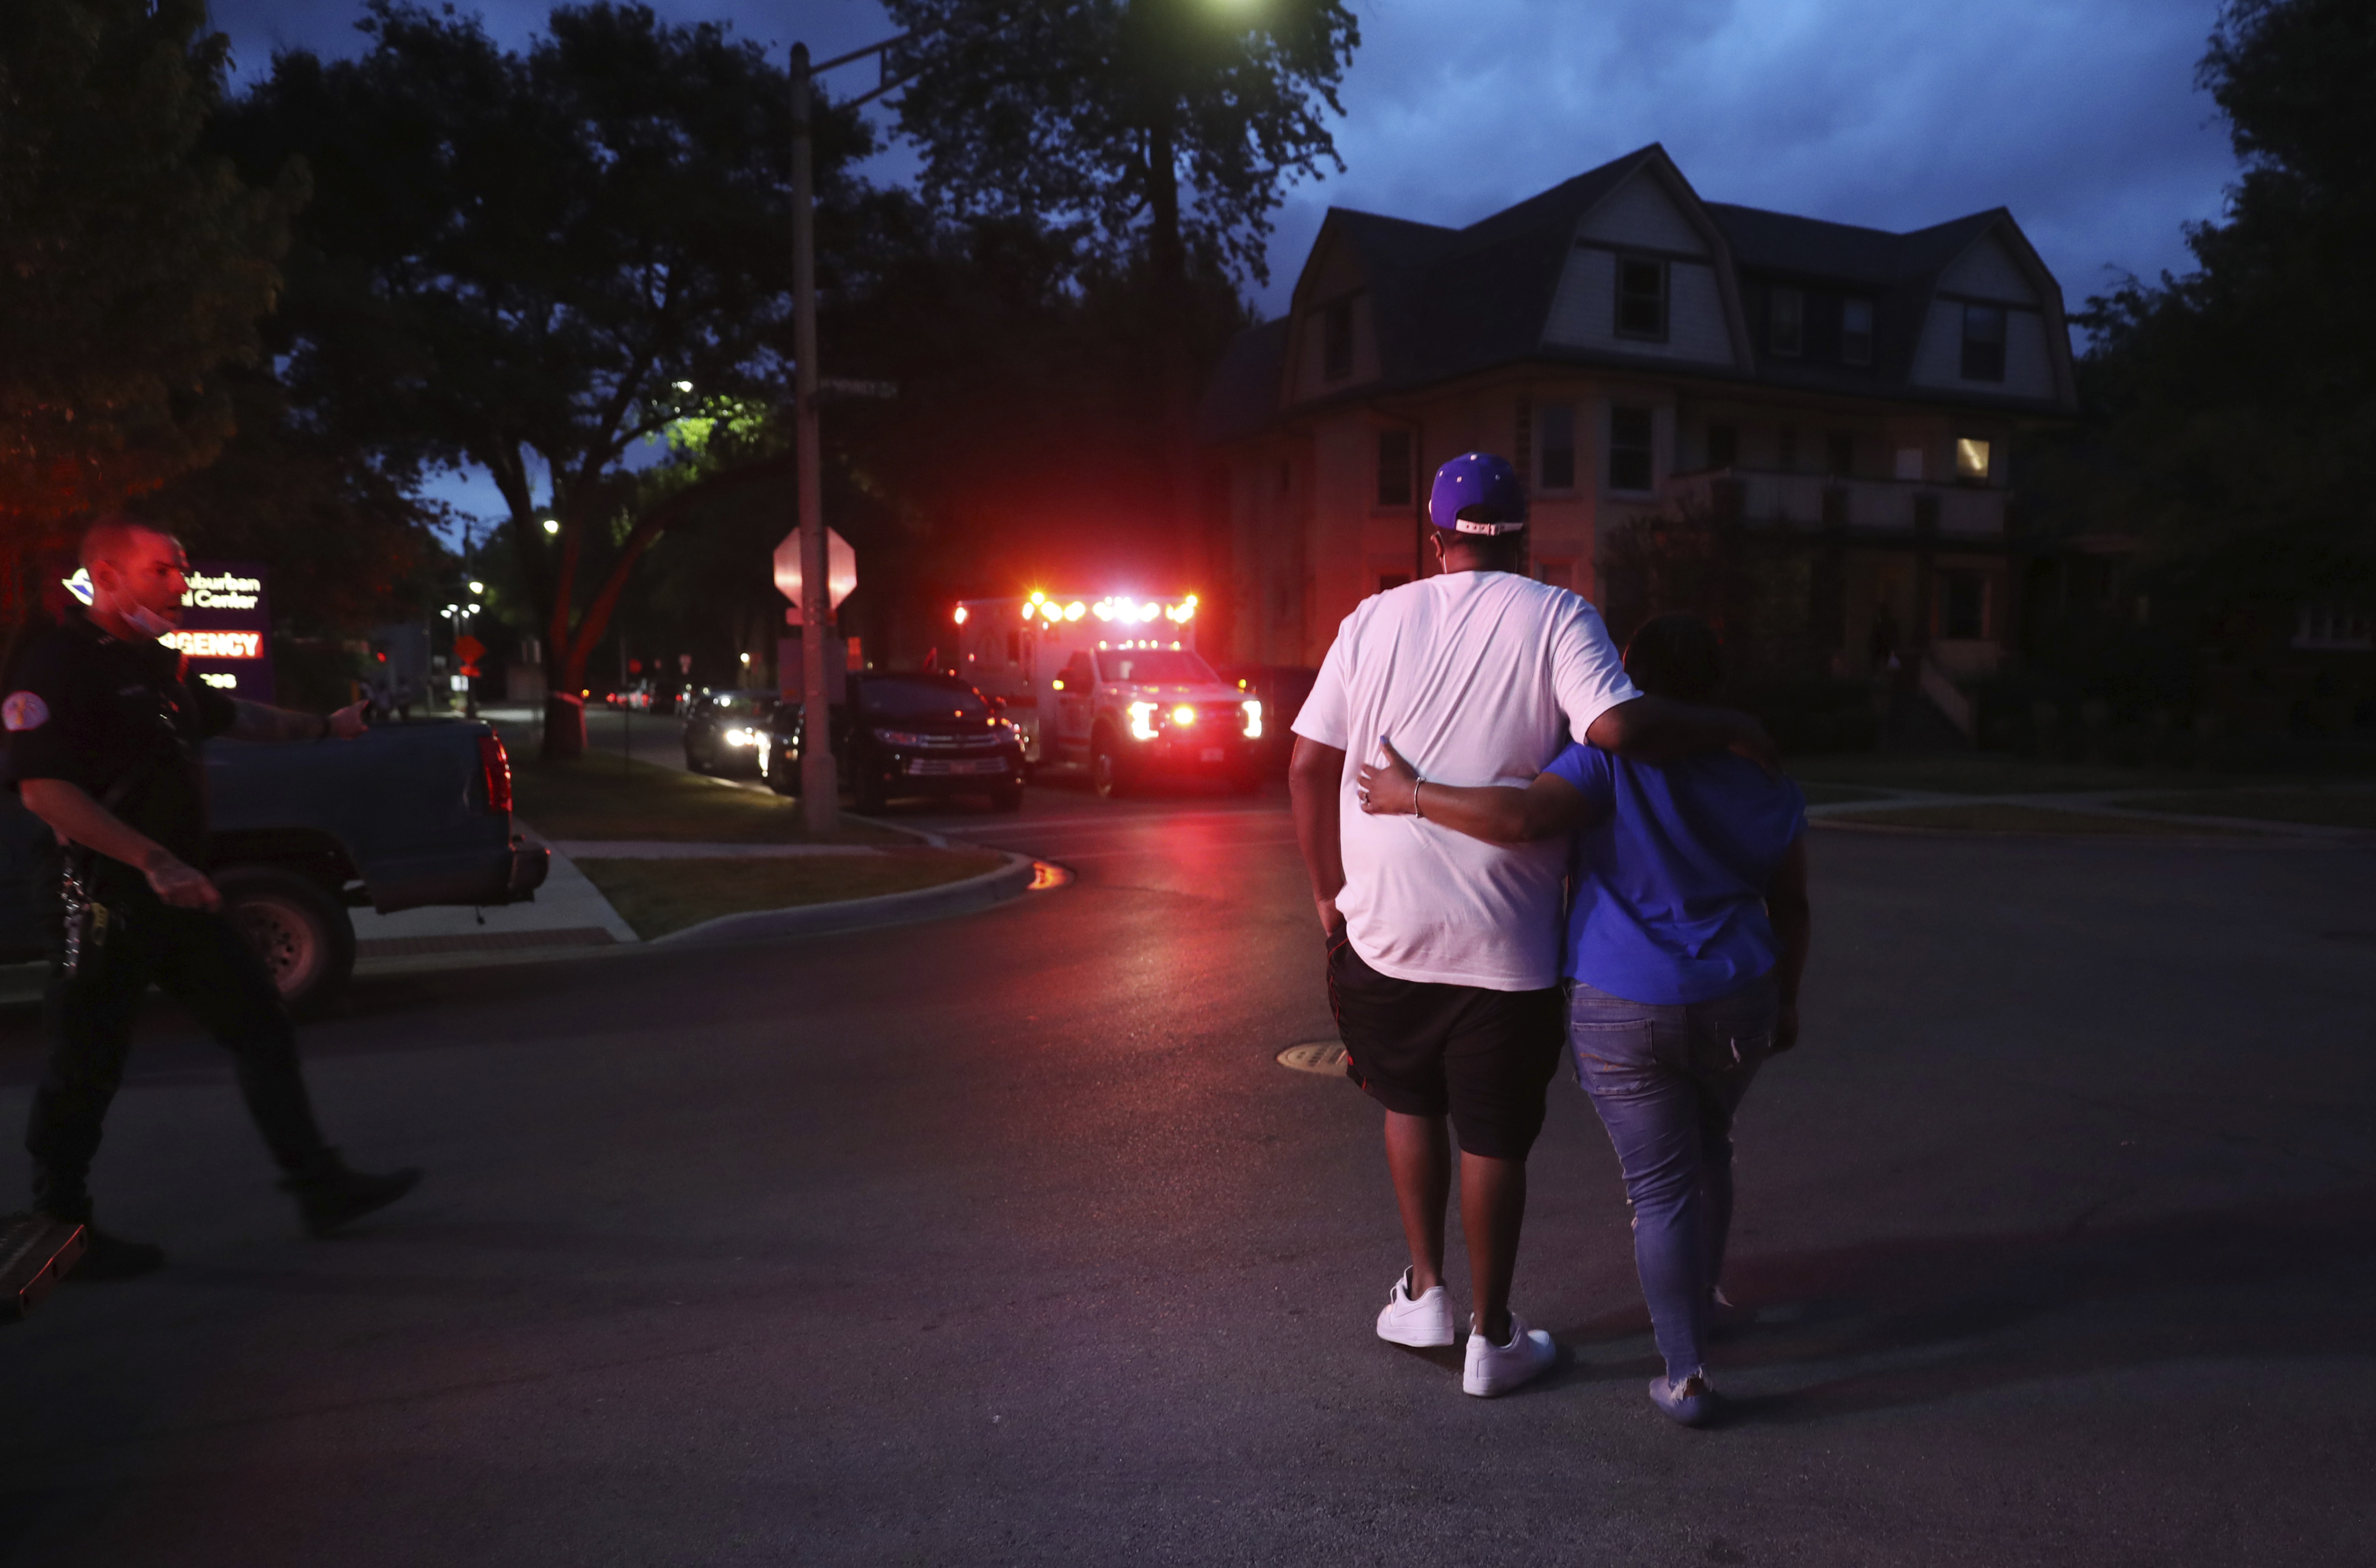 Two people walk away from West Suburban Medical Center in Oak Park, in Chicago, where a 3-year-old boy died after being shot while riding in an SUV with his father a few blocks away in the Austin neighborhood, June 20, 2020.